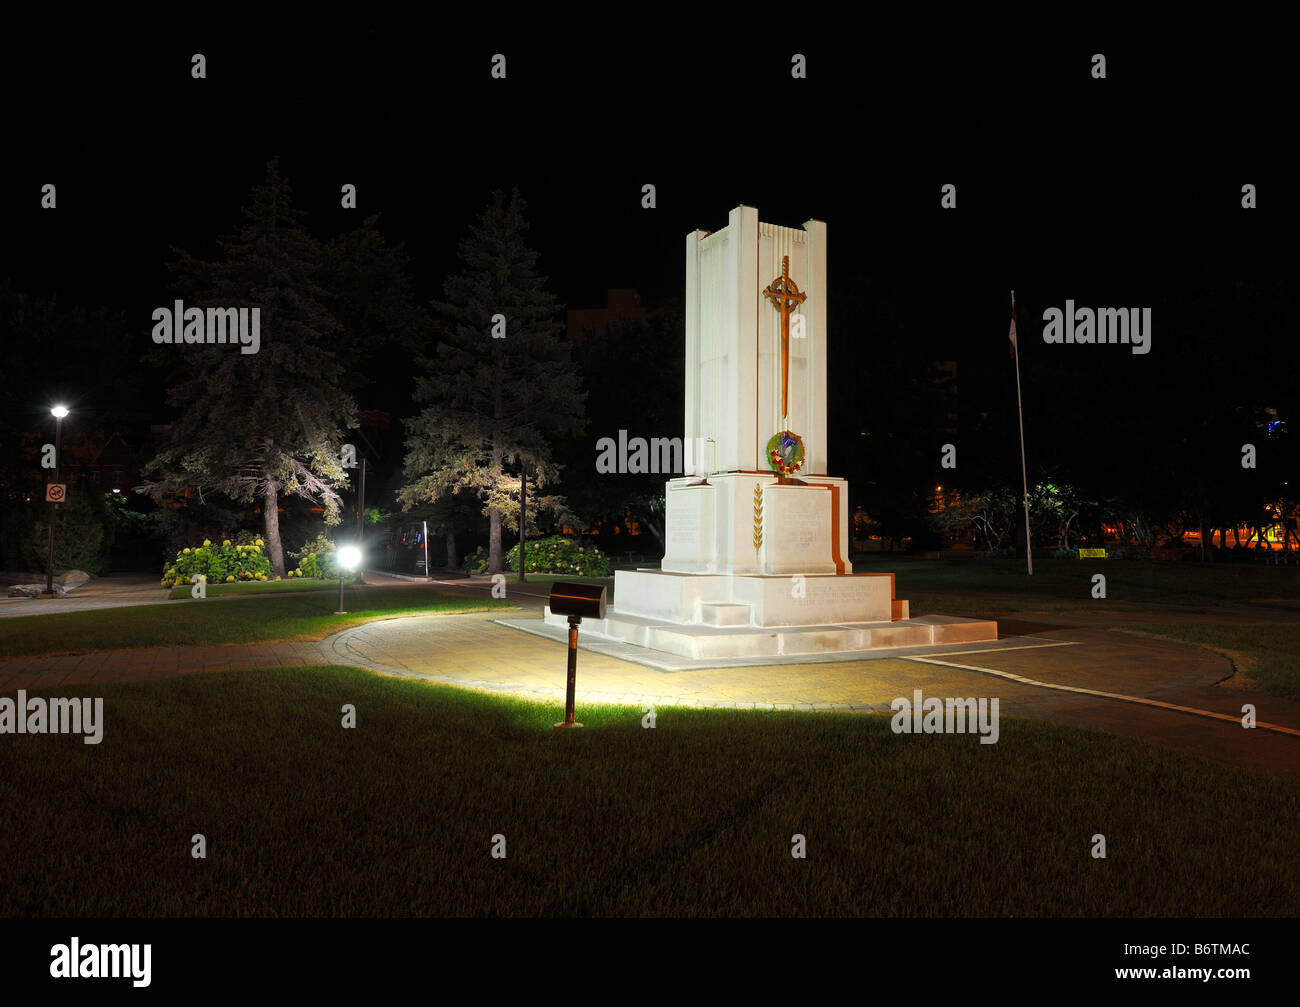 Th cenotaph at night - Stock Image